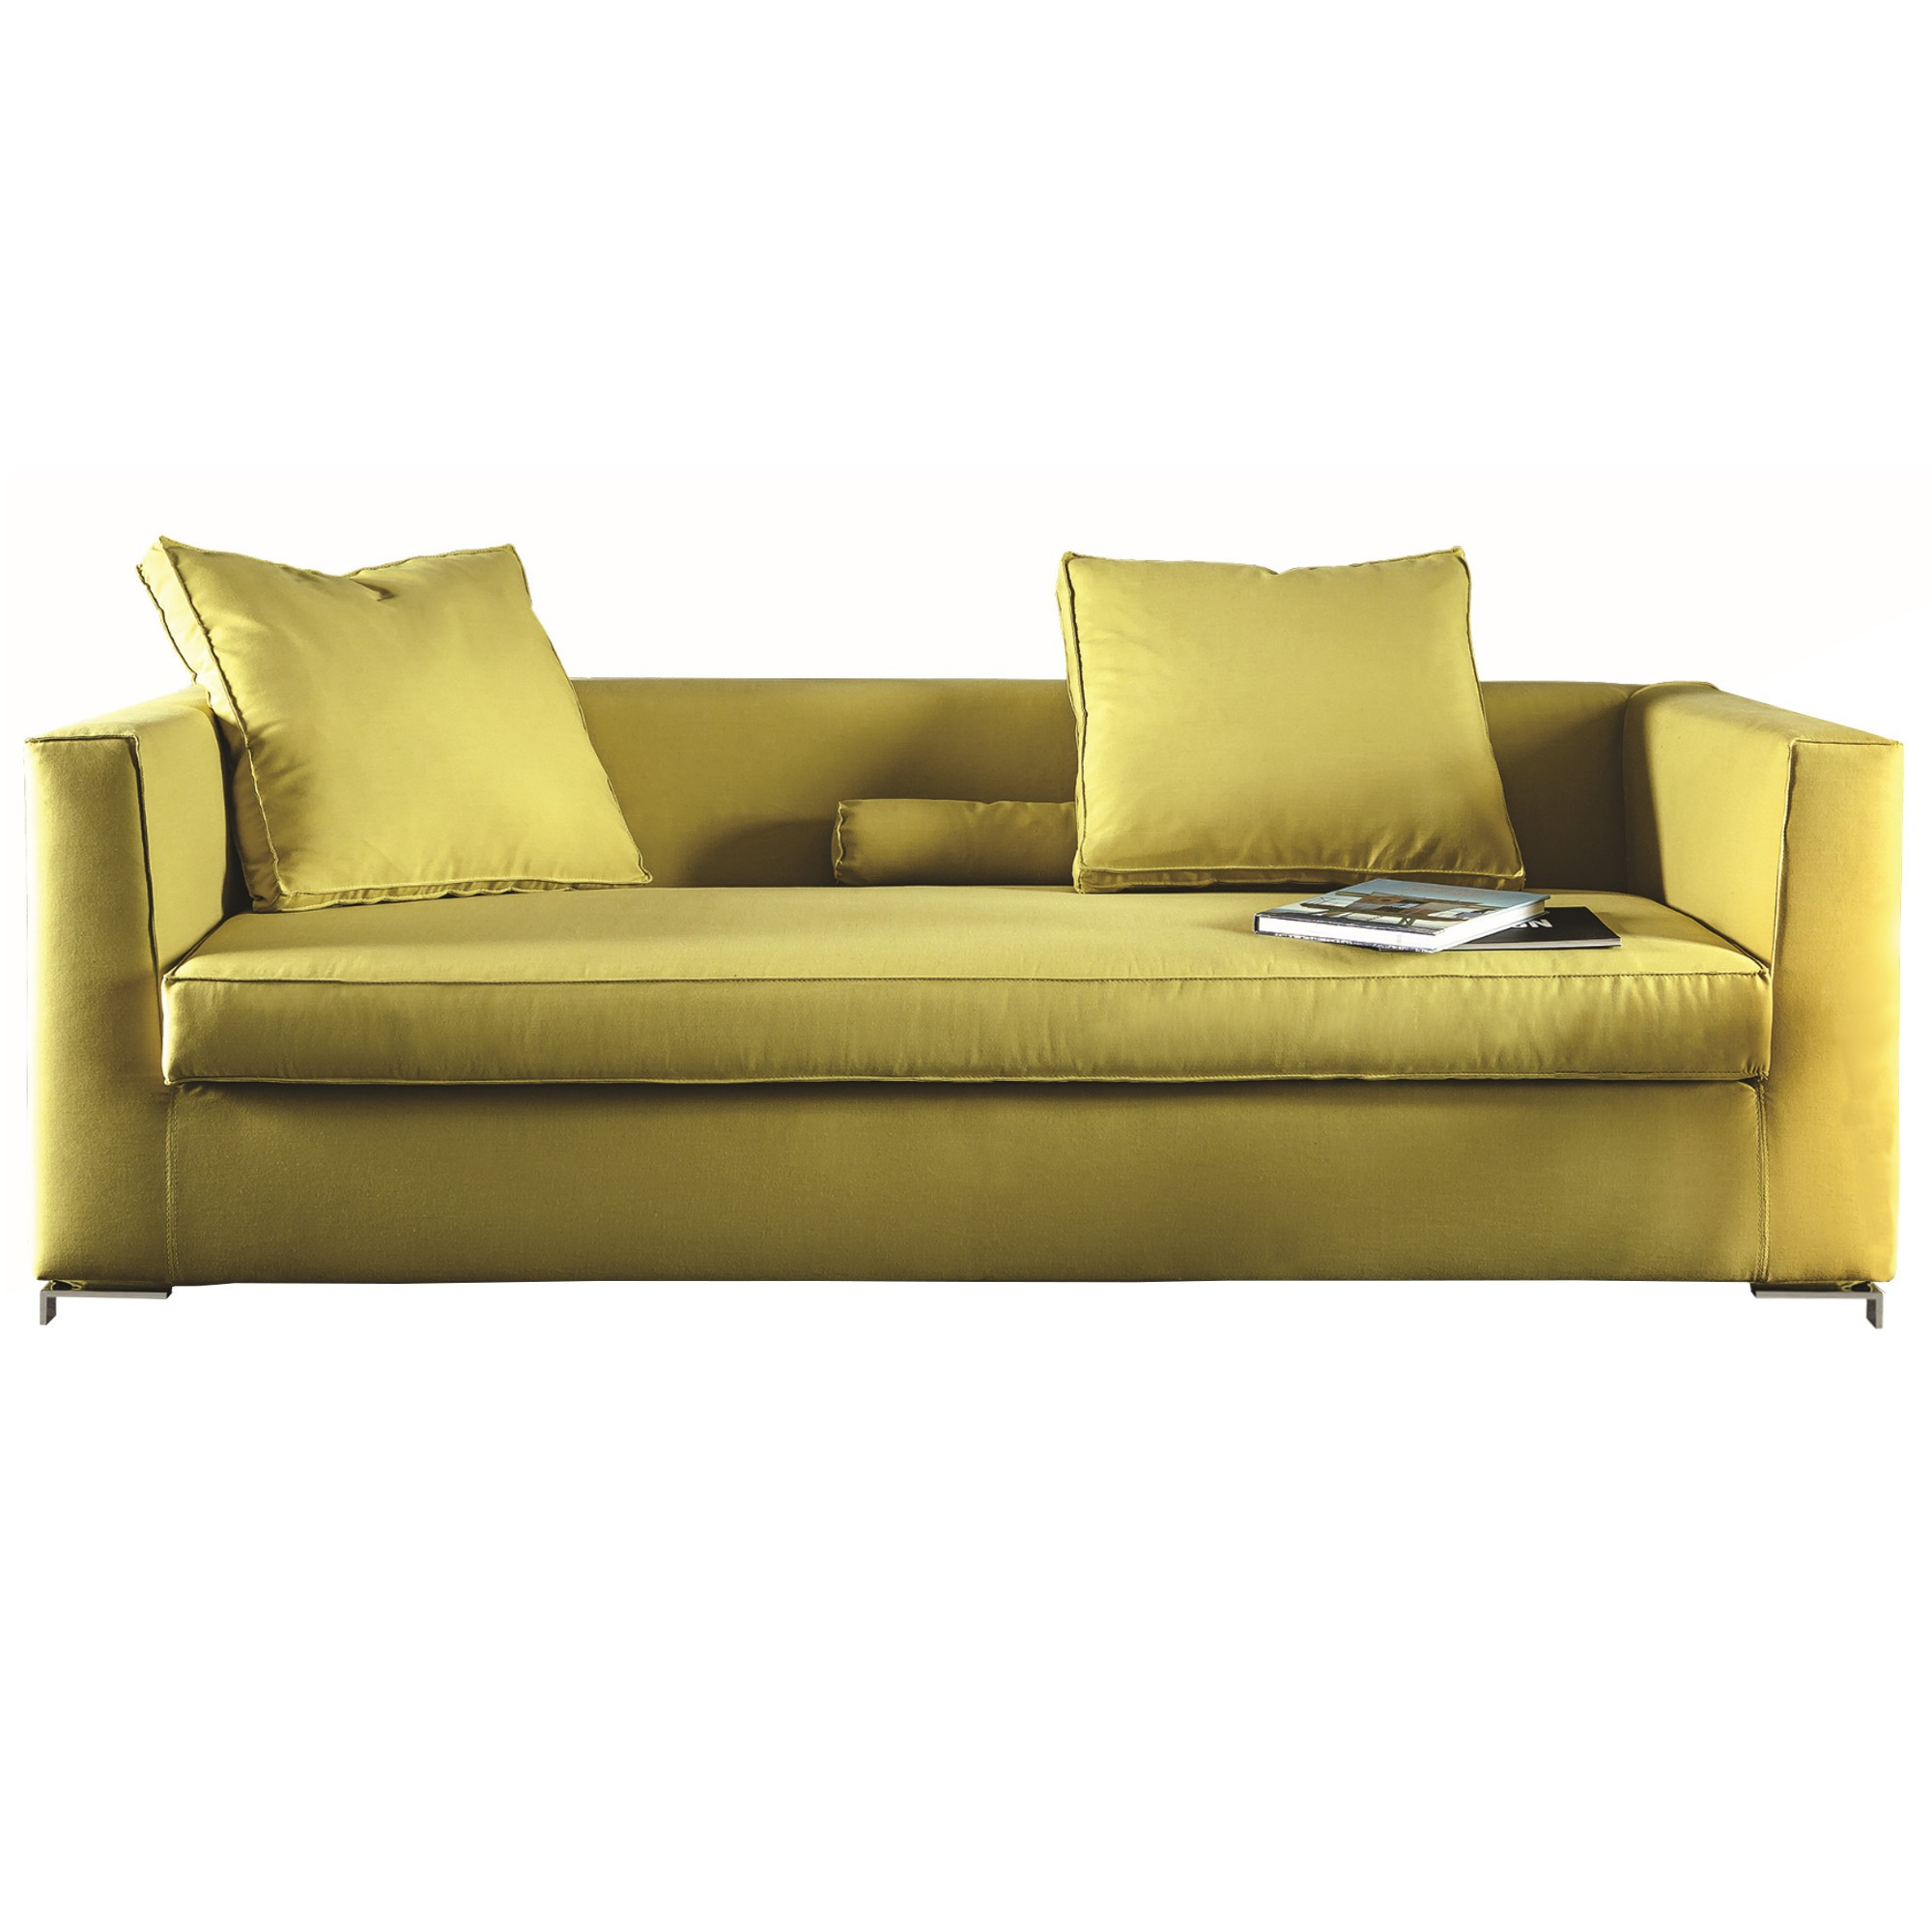 BEL AIR DIVANO LETTO, by VIBIEFFE